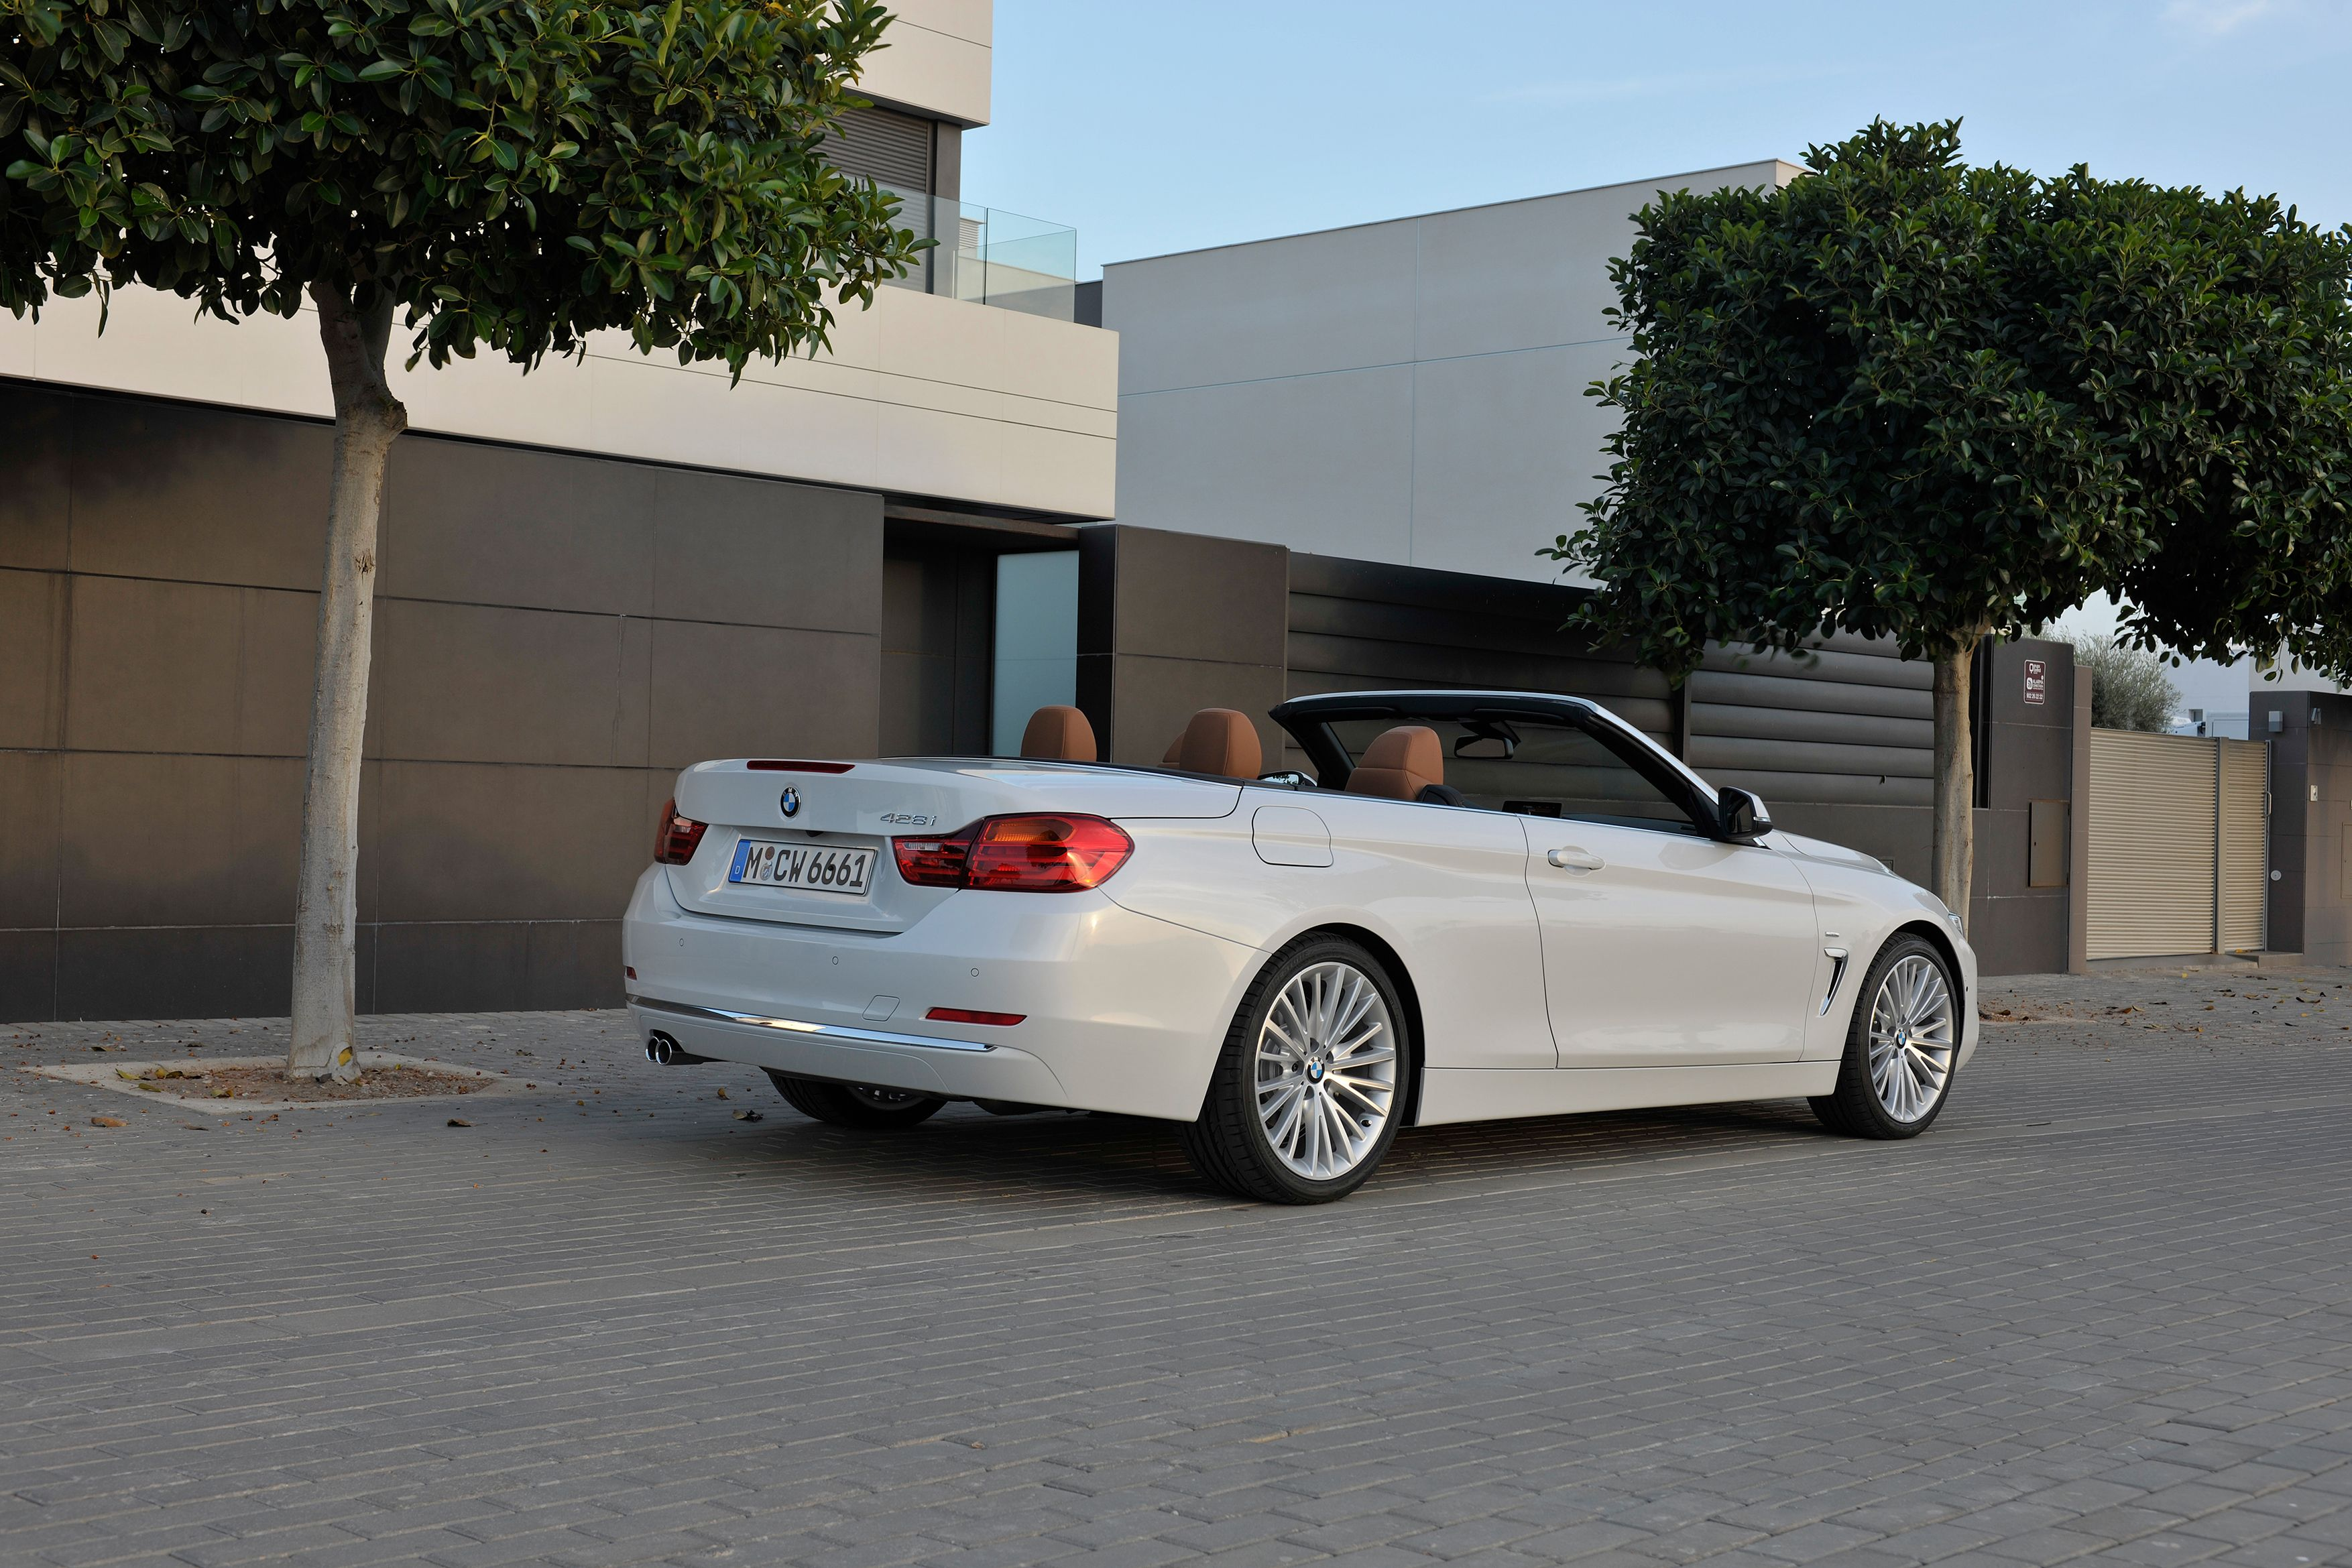 Pin By Bmw Life On Cars In 2020 Bmw 4 Series Bmw Bmw Convertible